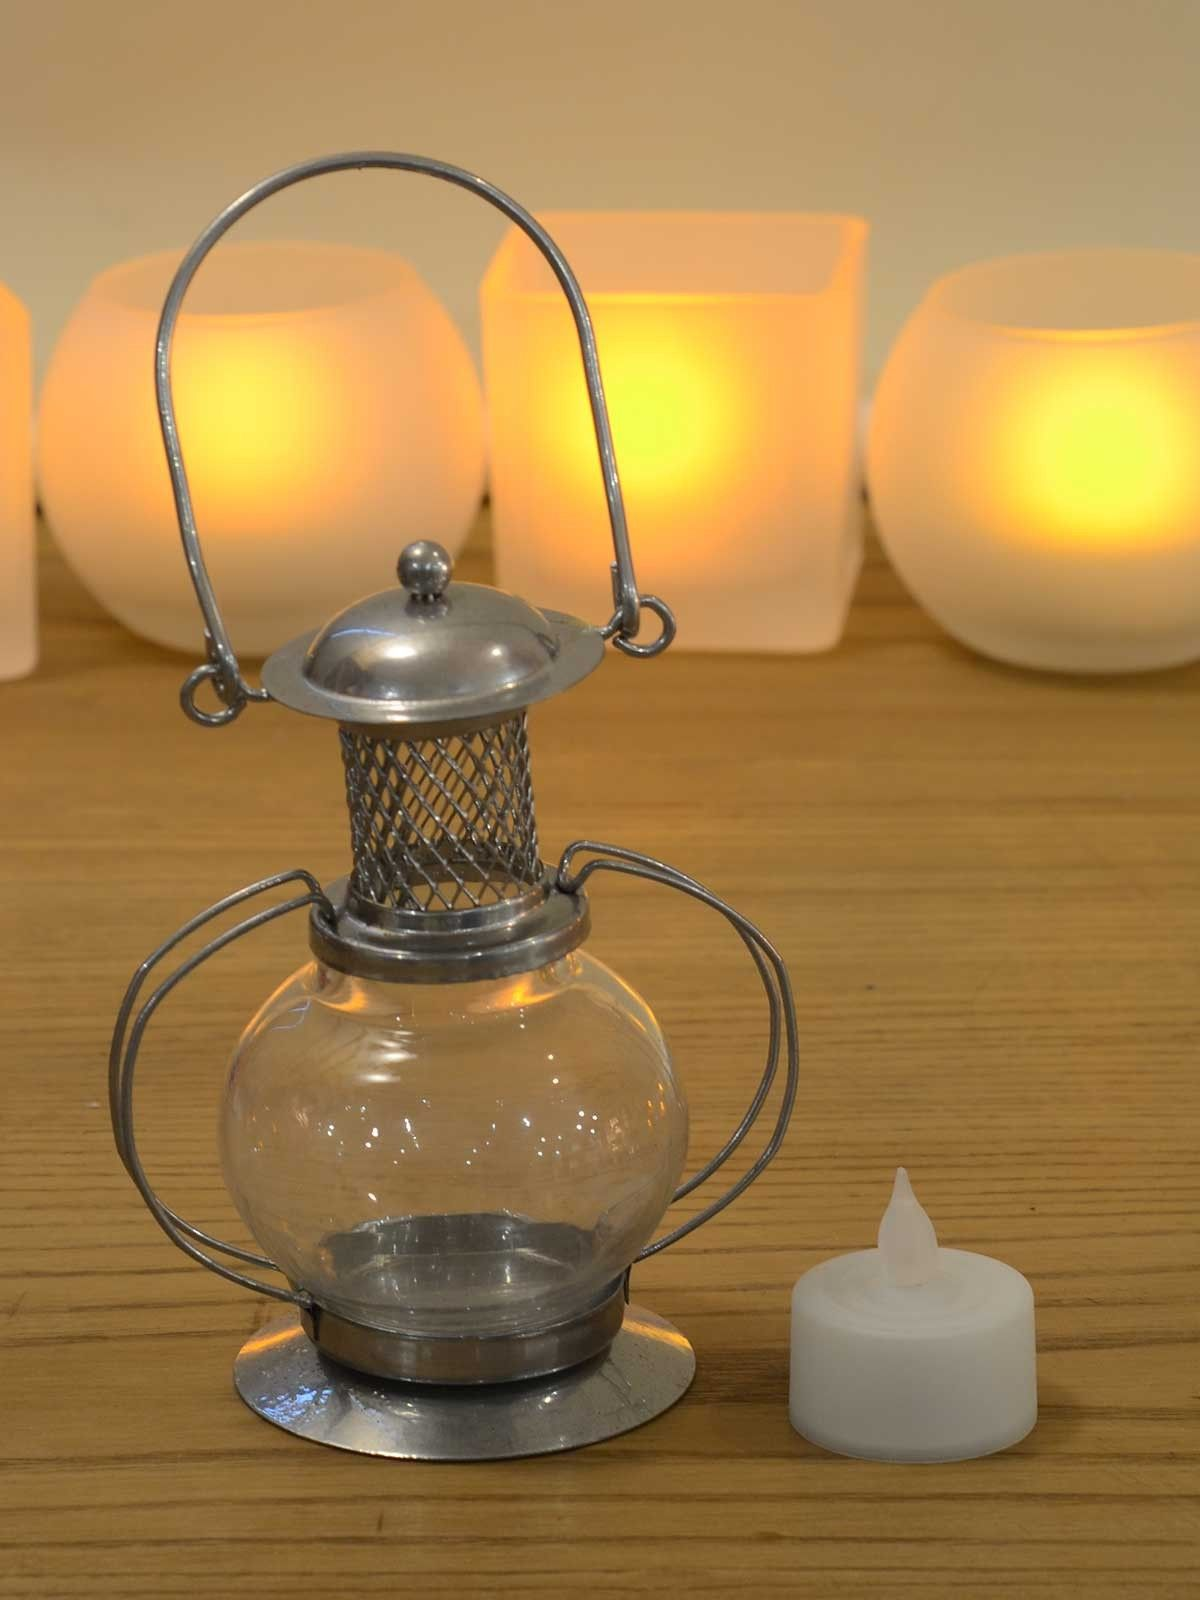 Silver Amber Glass Vintage Lantern (with flameless tea-light candle) - 2 x 4 Inches